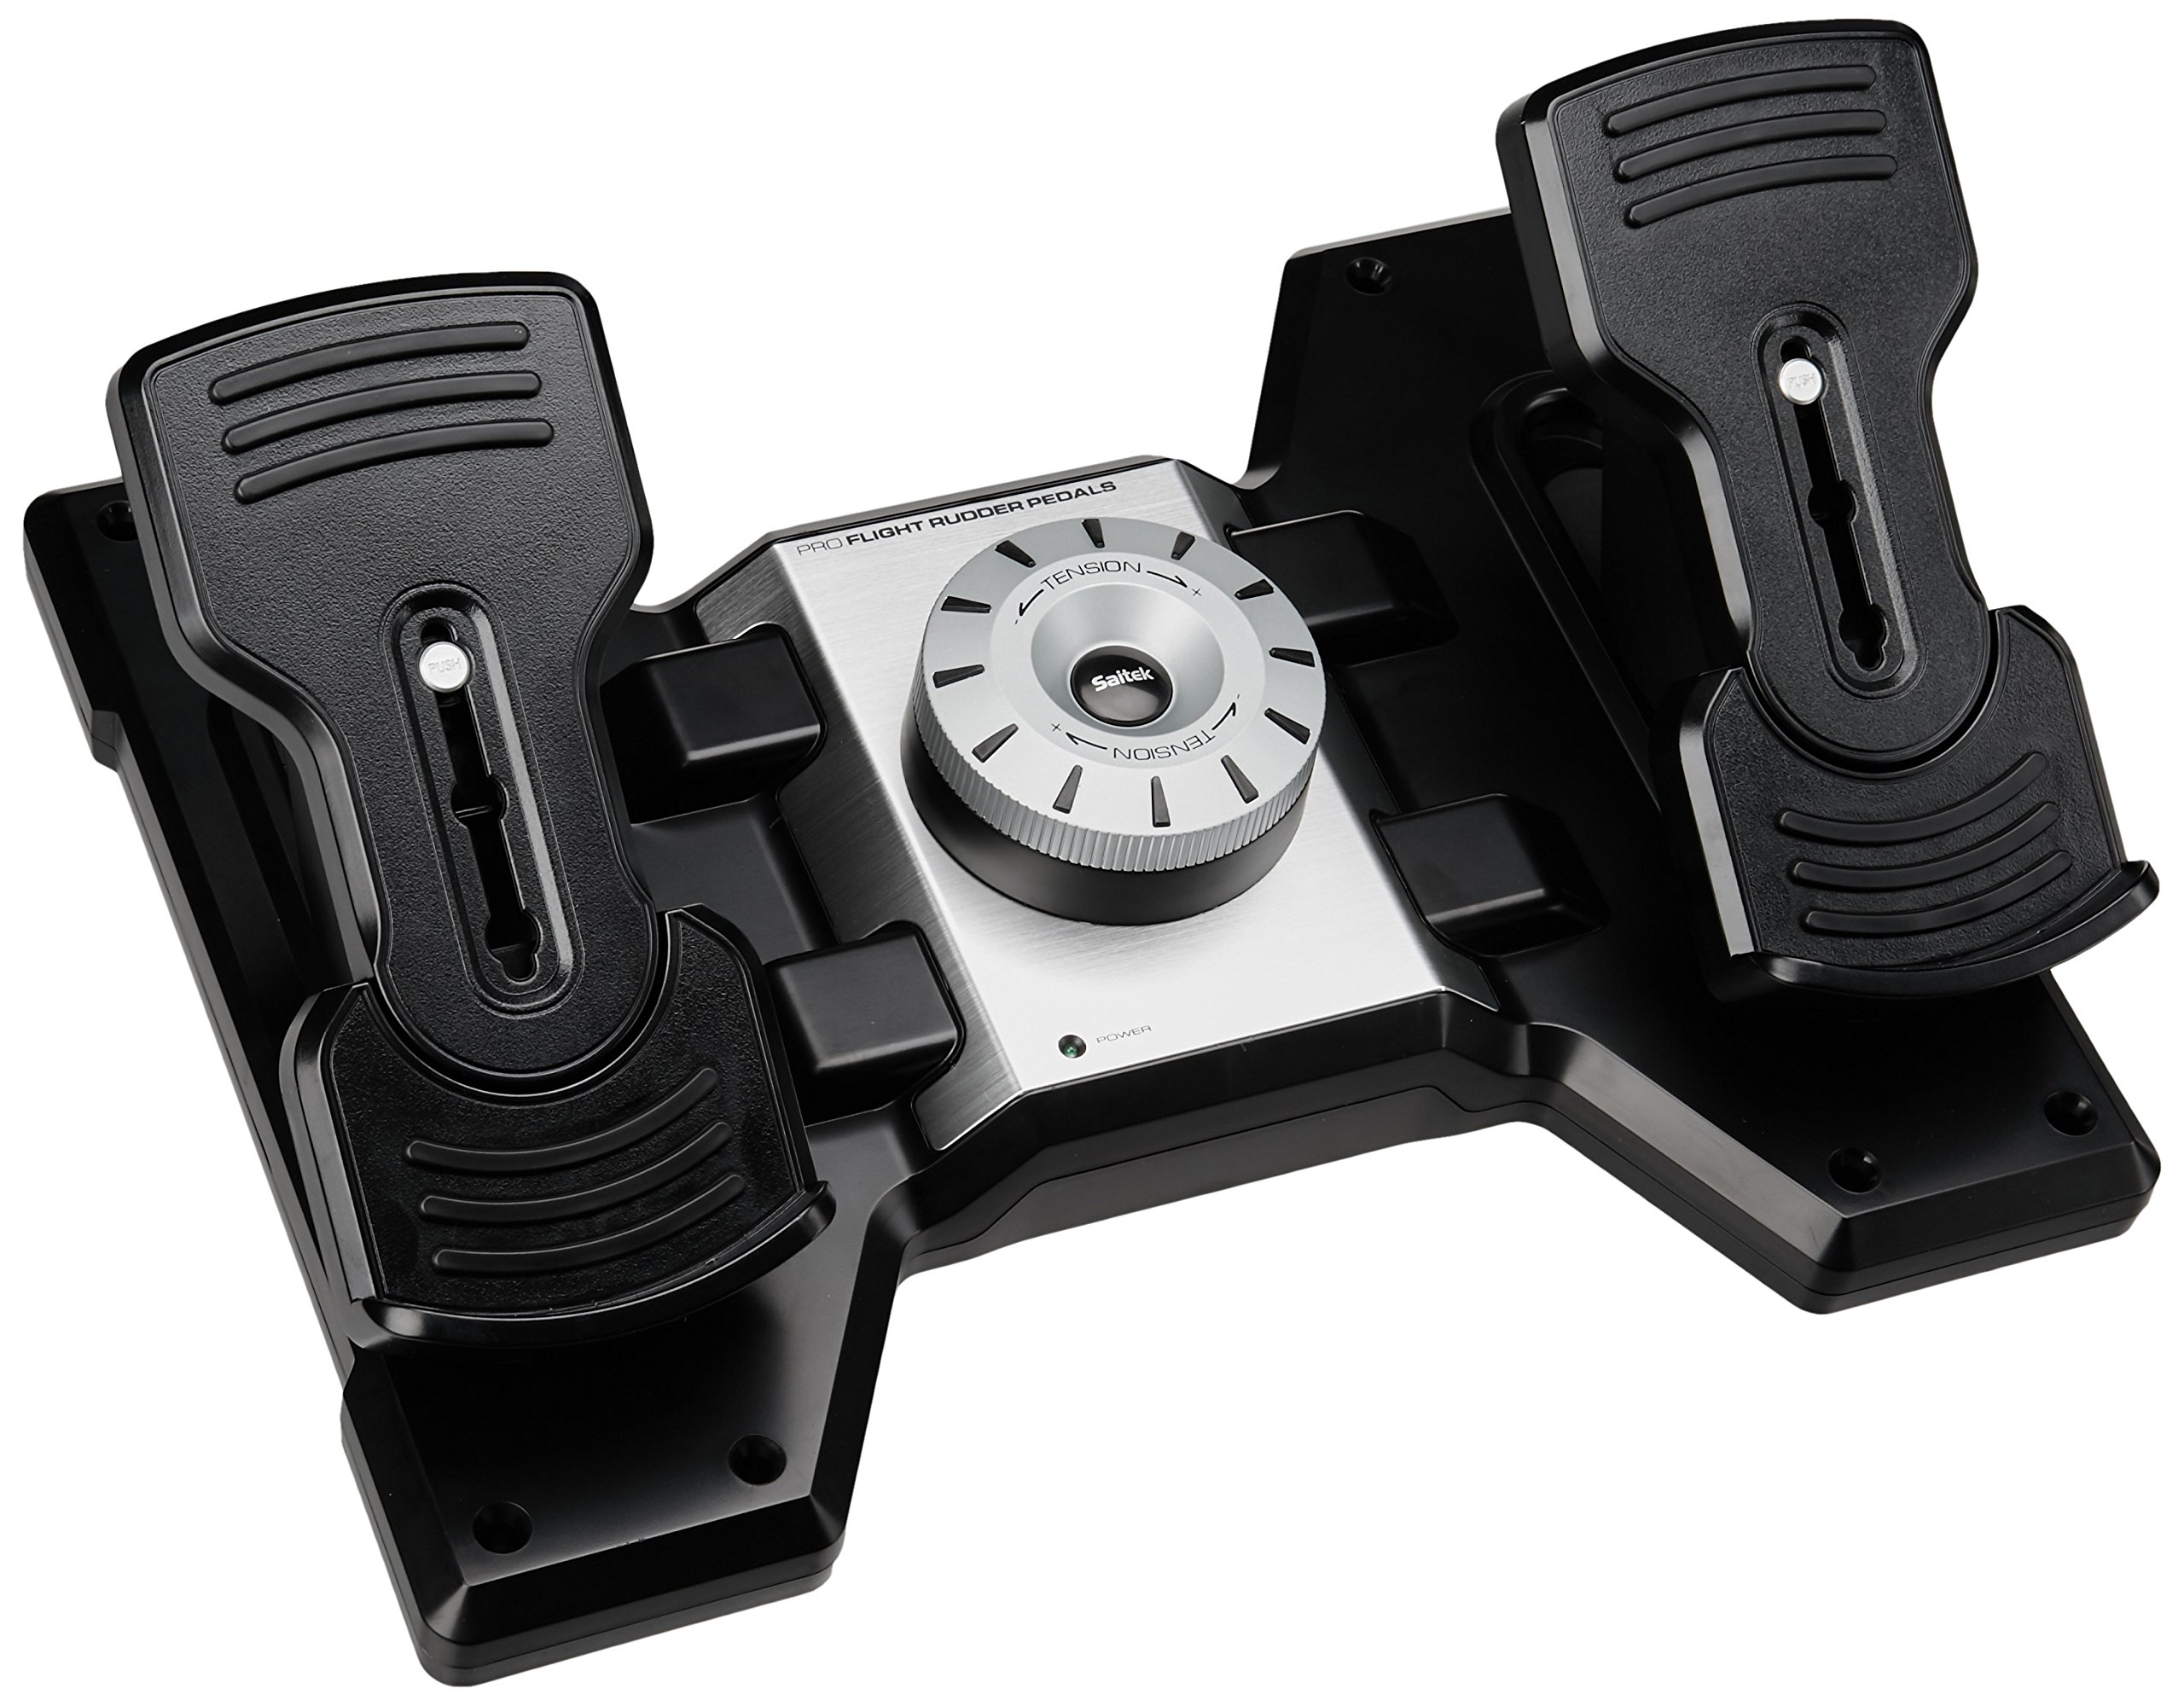 Saitek PZ35 Pro Flight Rudder Pedals Palonnier simulation de vol pour PC product image